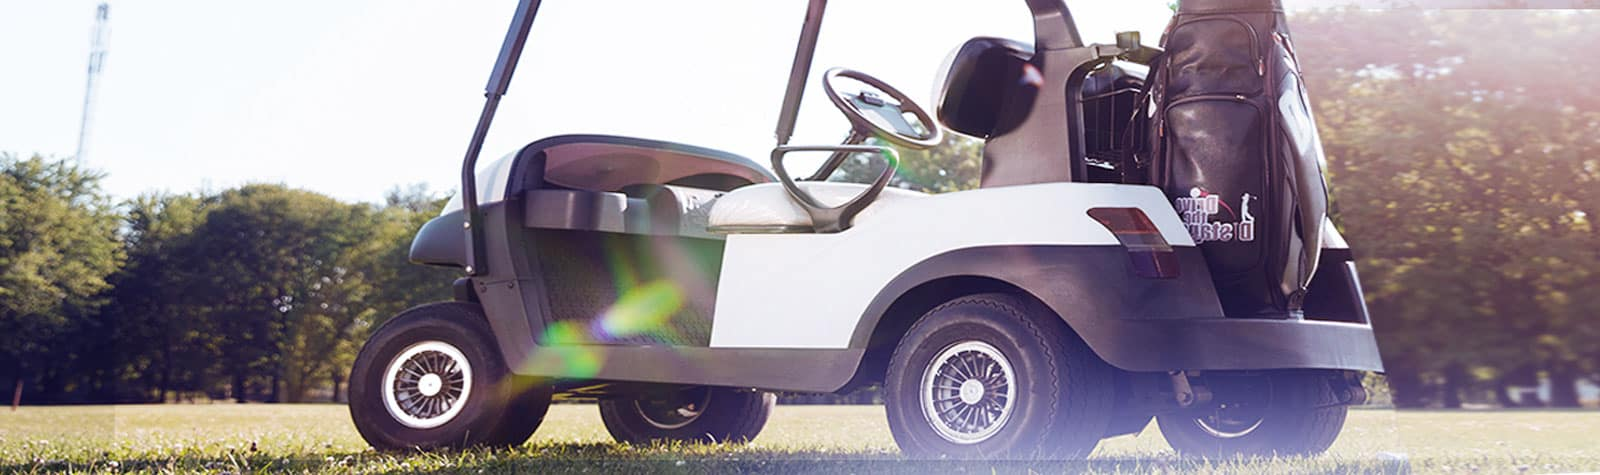 Can You Use Regular Deep Cycle Batteries In A Golf Cart?